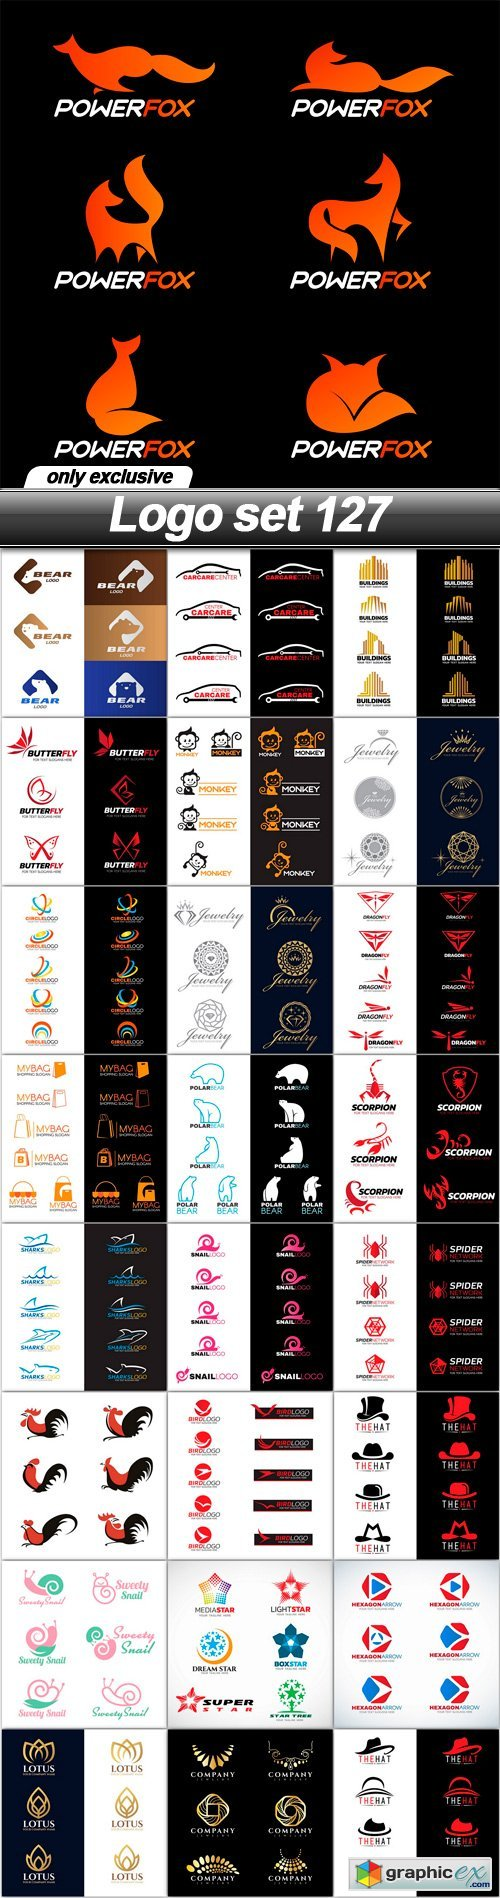 Logo set 127 - 25 EPS